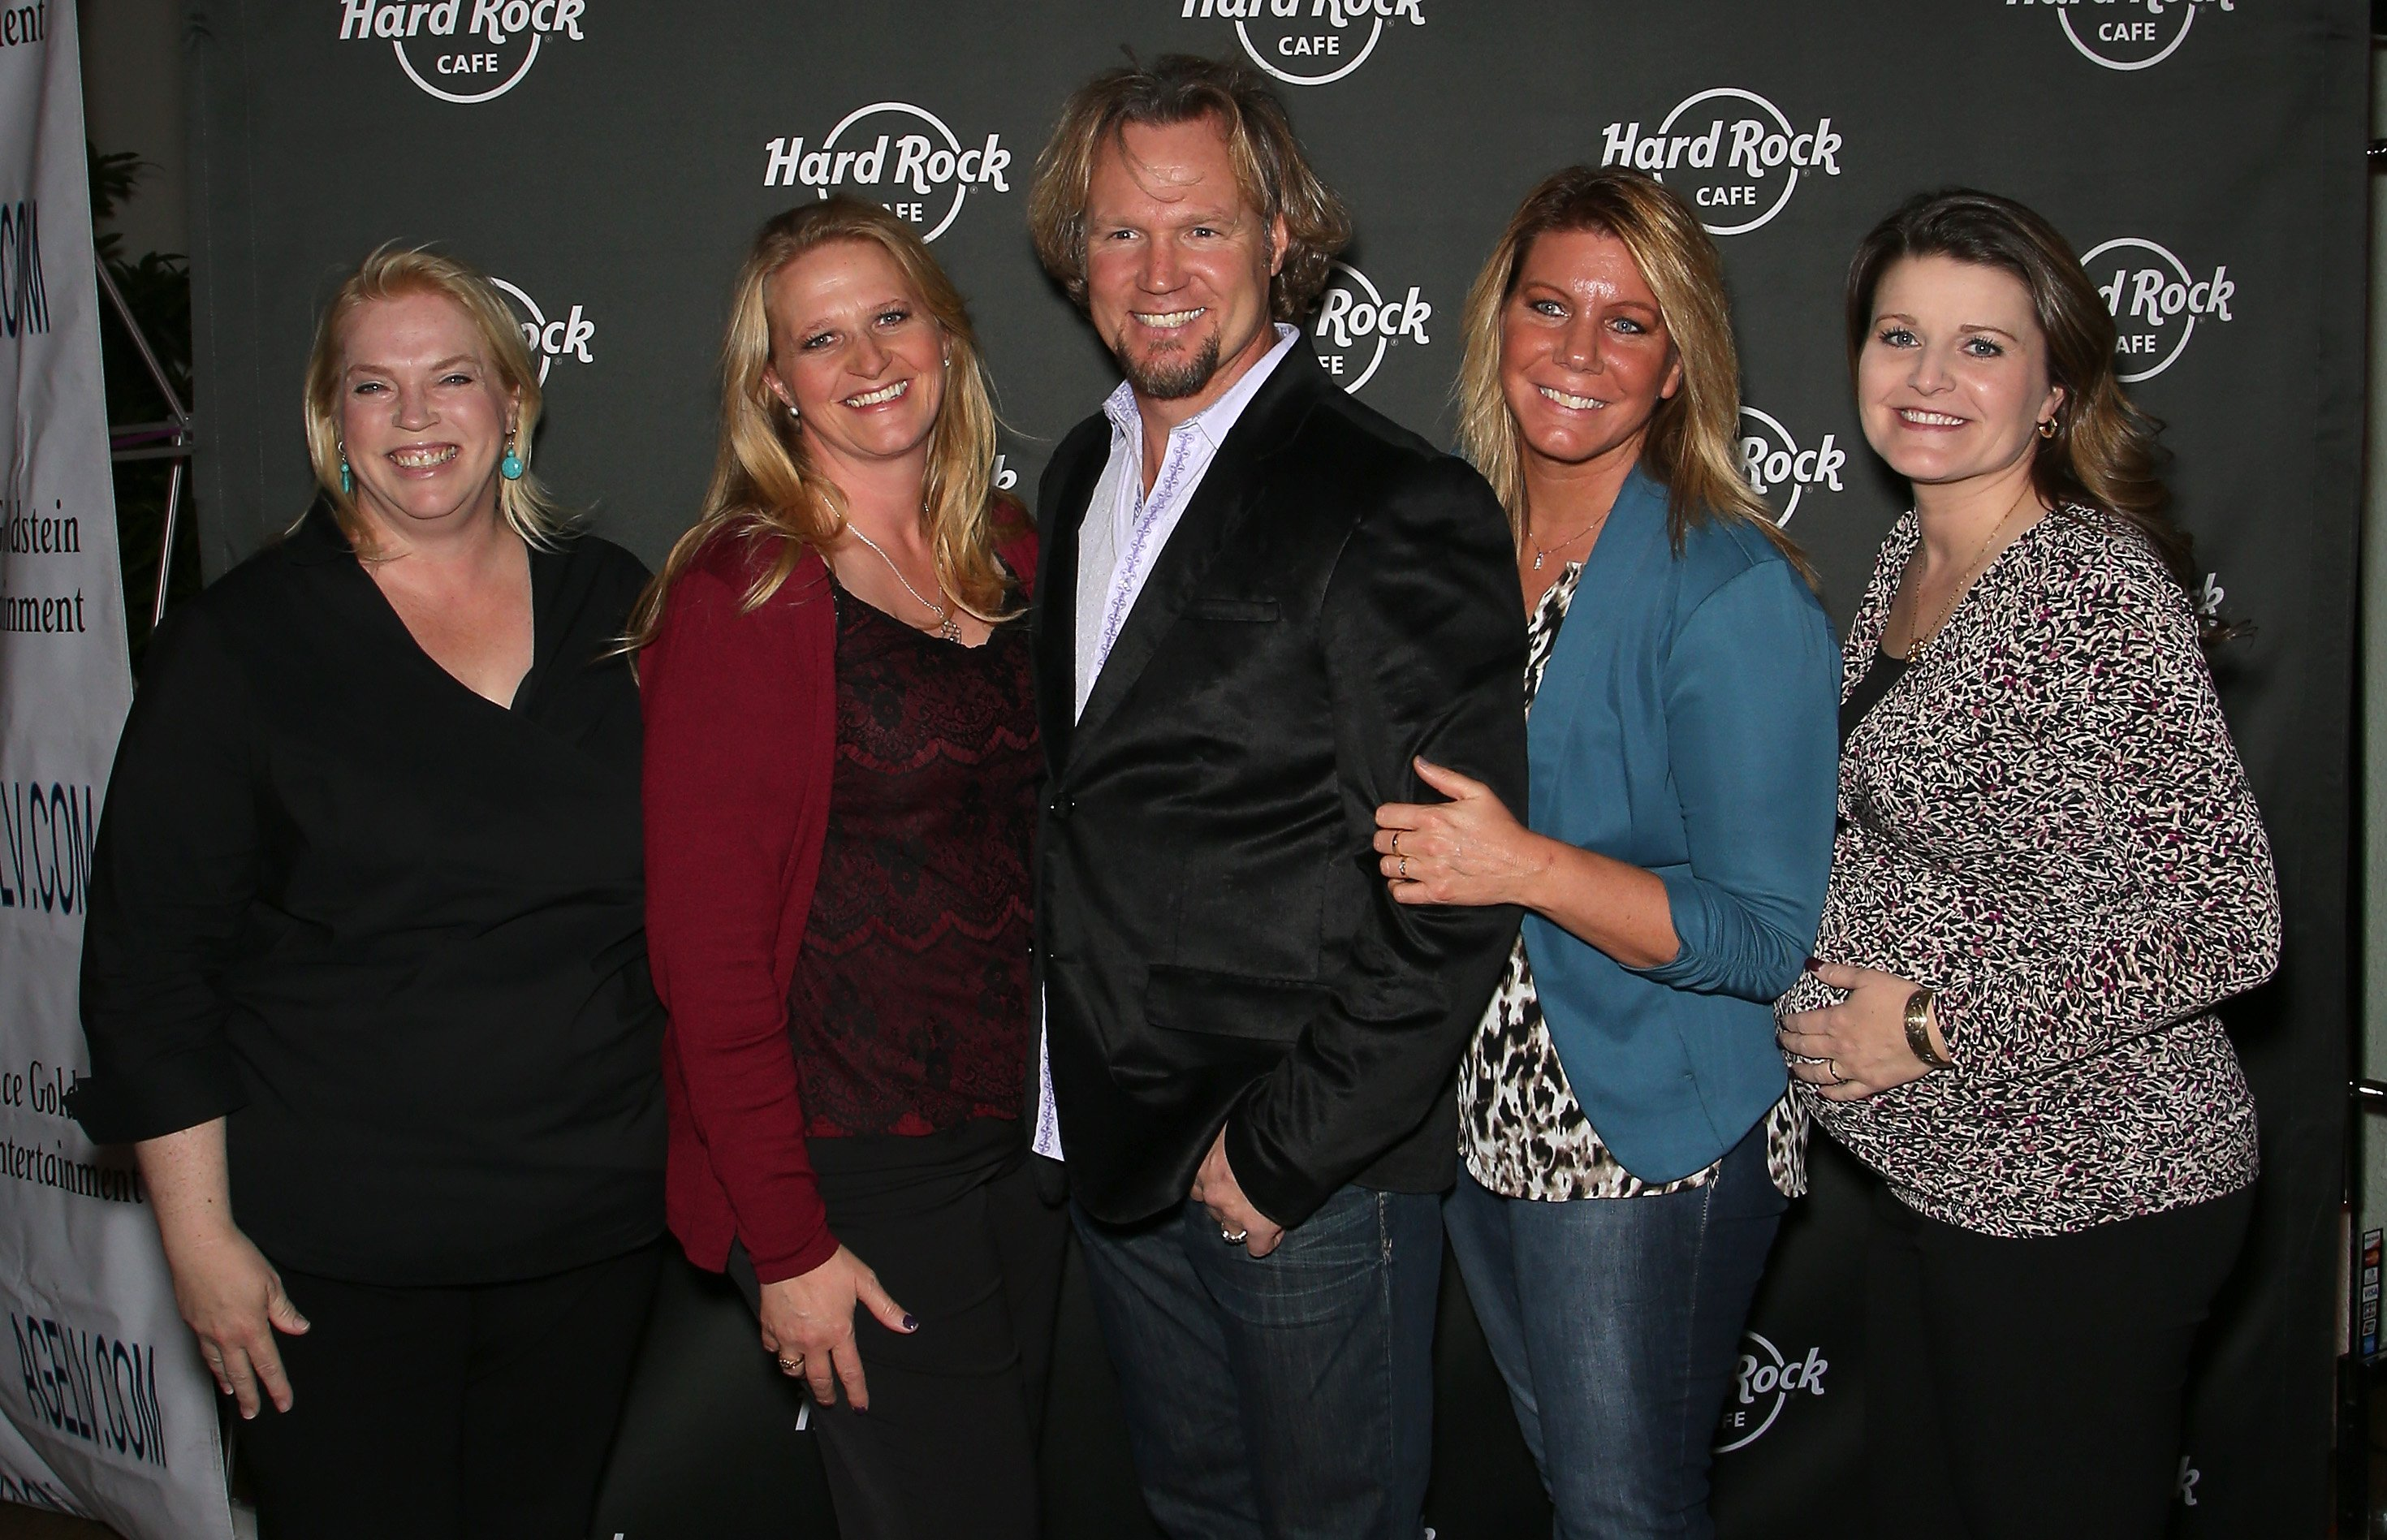 Kody Brown and his wives, Janelle Brown, Christine Brown, Meri Brown and Robyn Brown, attend Hard Rock Cafe Las Vegas at Hard Rock Hotel's 25th anniversary celebration on October 10, 2015   Photo: Getty Images